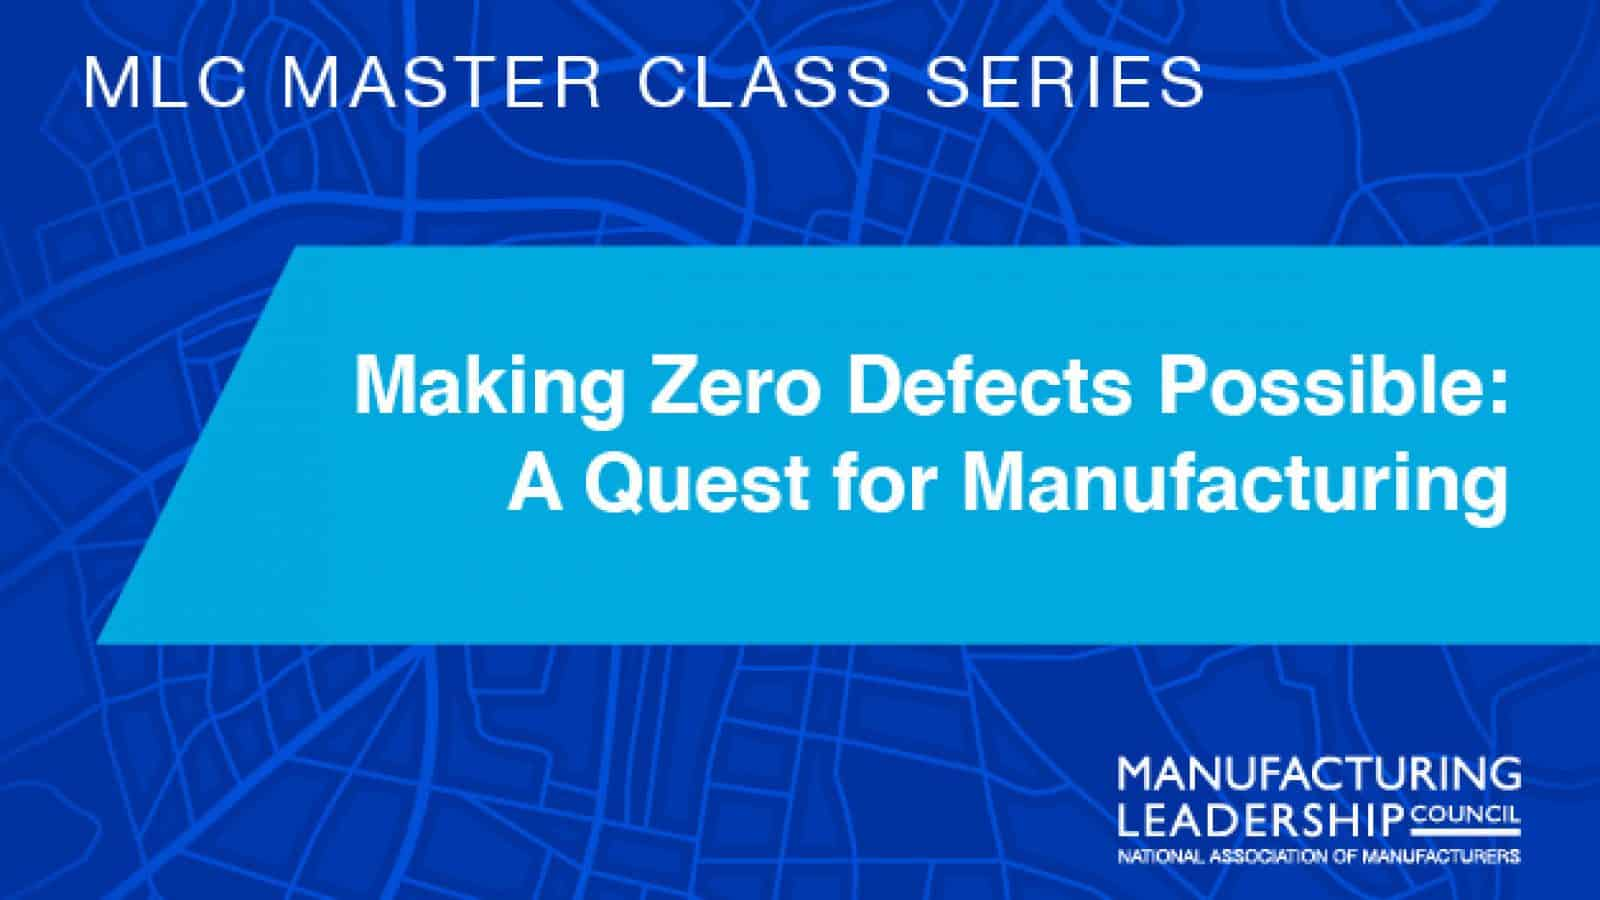 Making Zero Defects Possible: A Quest for Manufacturing